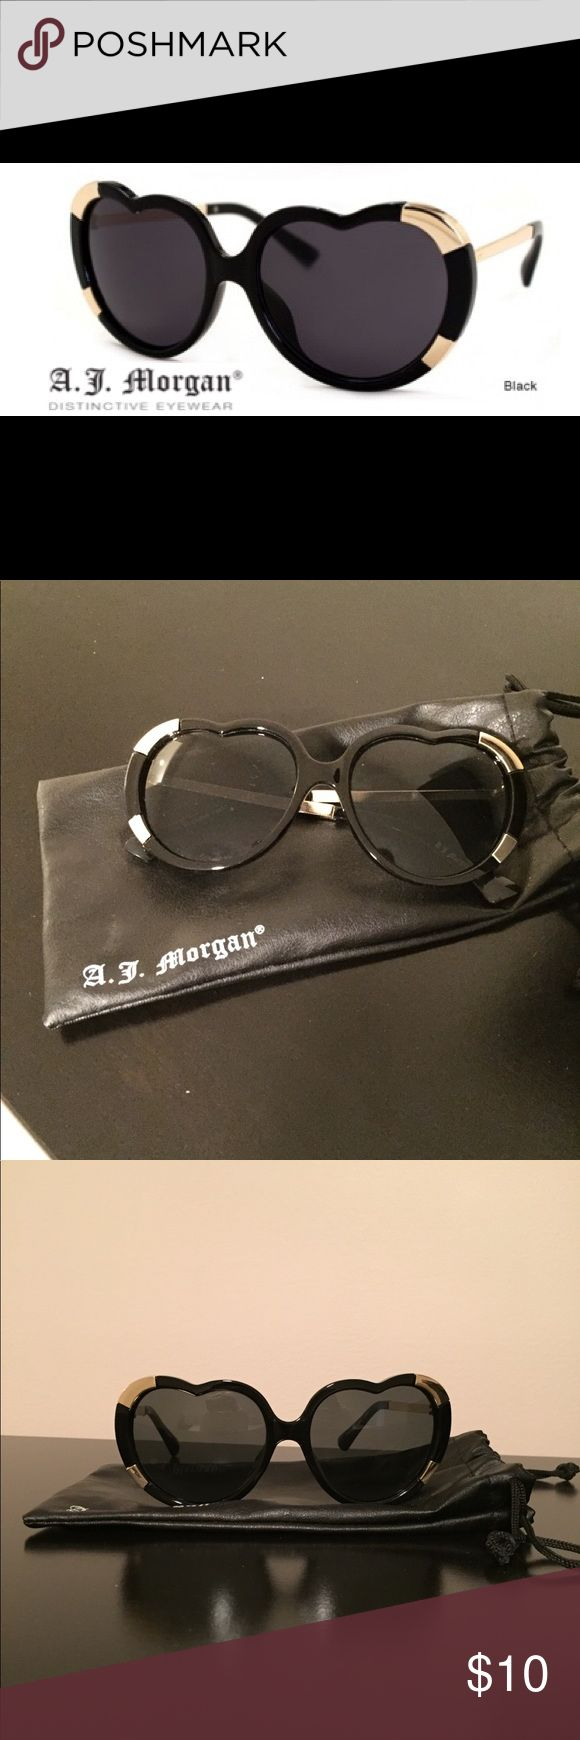 🕶A.J. MORGAN HEART-SHAPED SUNGLASSES 🖤A.J. Morgan heart-shaped sunglasses. Black with gold accents on frame. * Made From High-Quality Injection Mold Plastics * Full UV 400 Protection * Impact Resistant Lenses * Fashionable, Funky and Hip Designer Sunglass Styles Worn but GREAT condition. A.J. Morgan Accessories Sunglasses